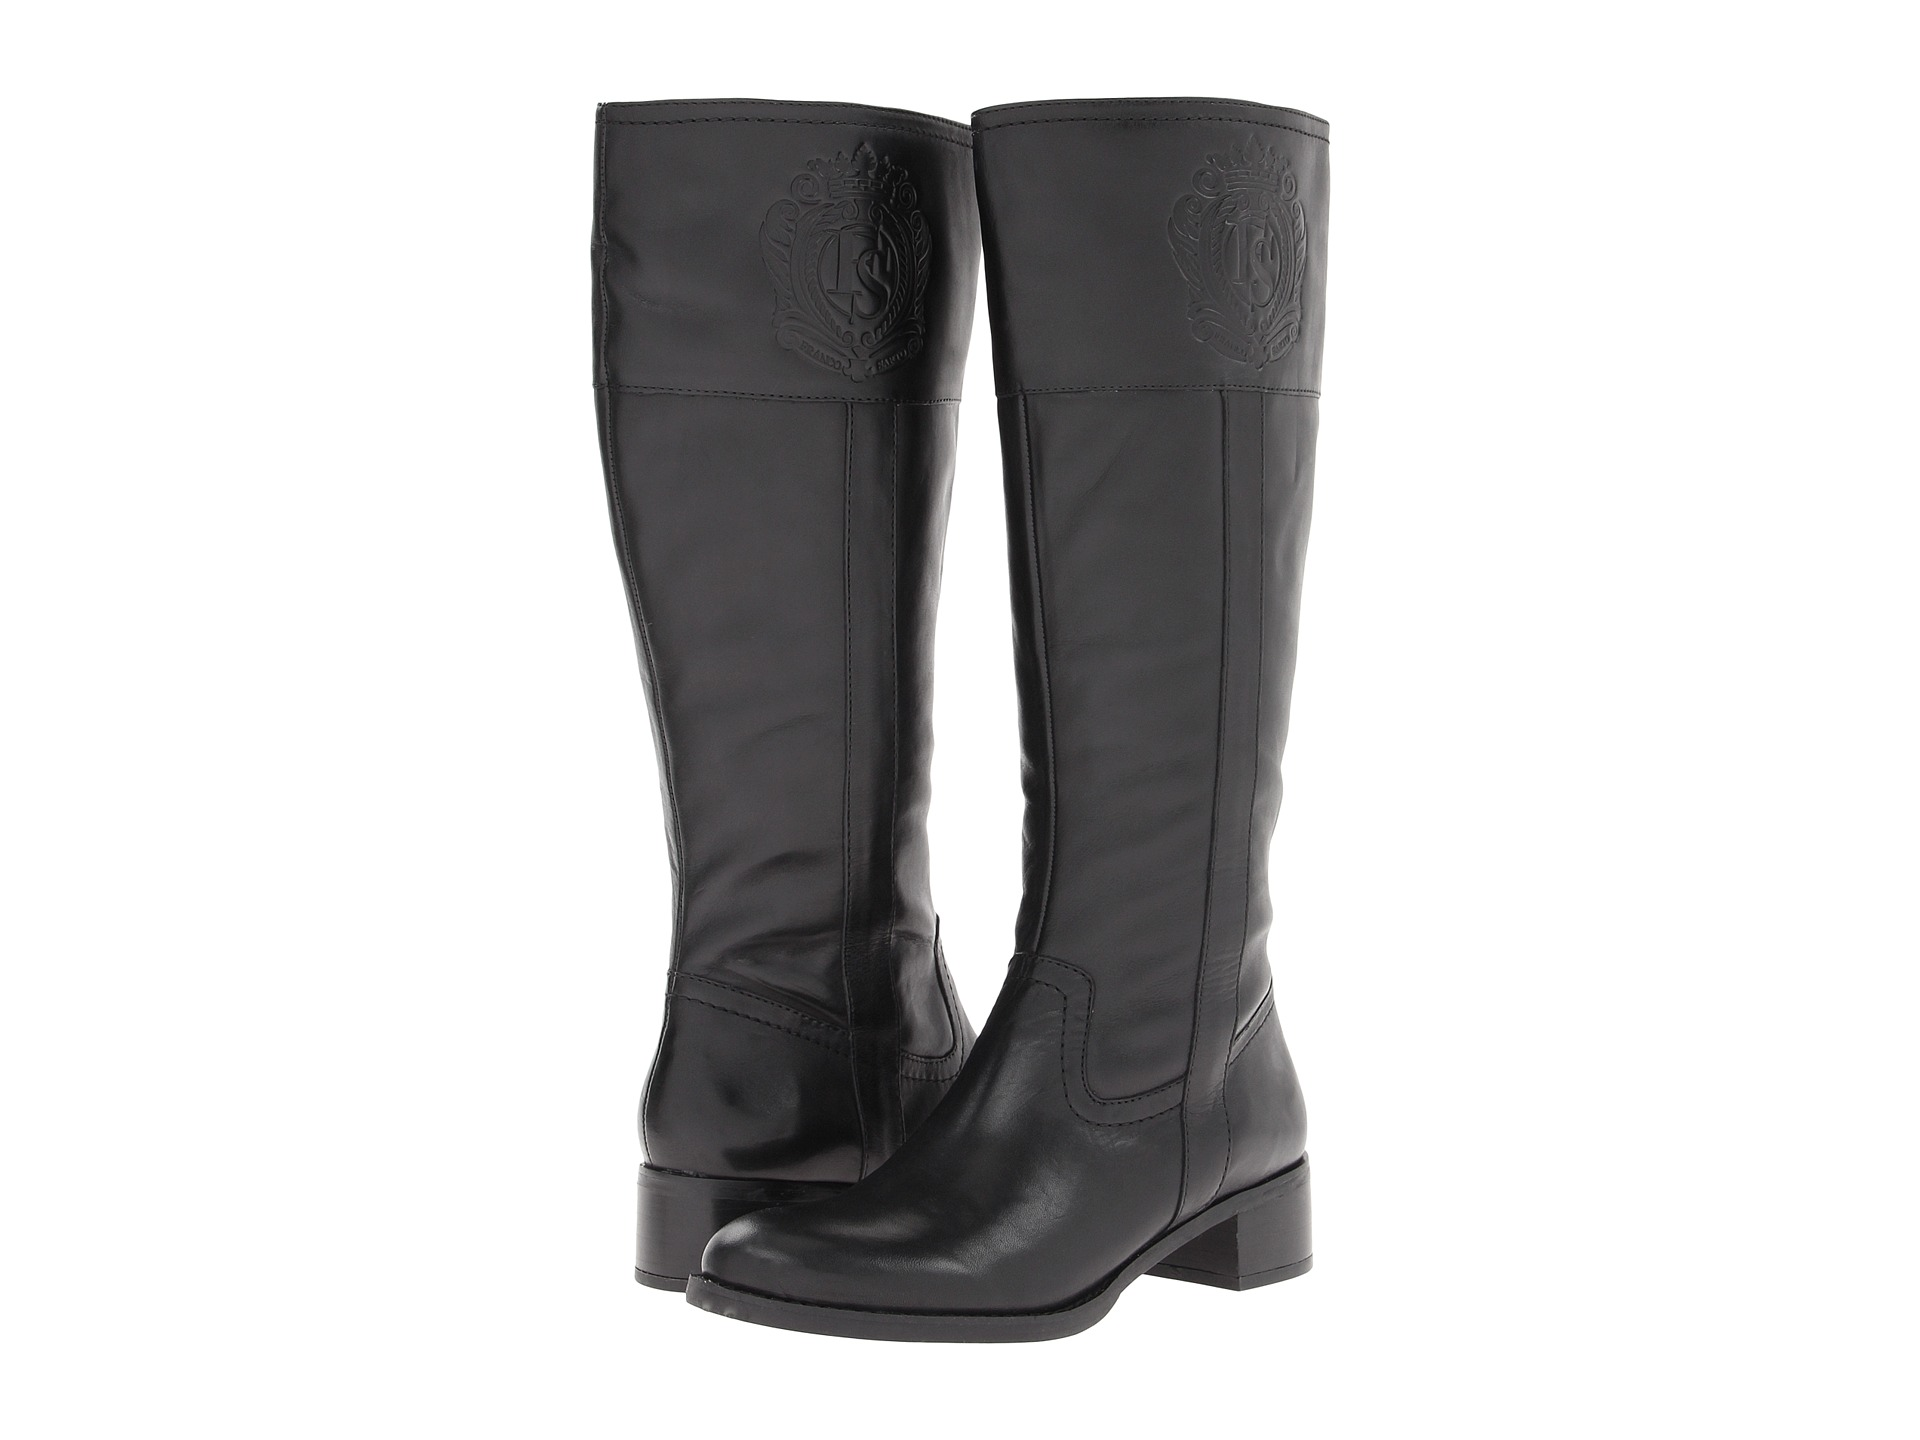 Black Riding Boots For Women UydcBTLZ